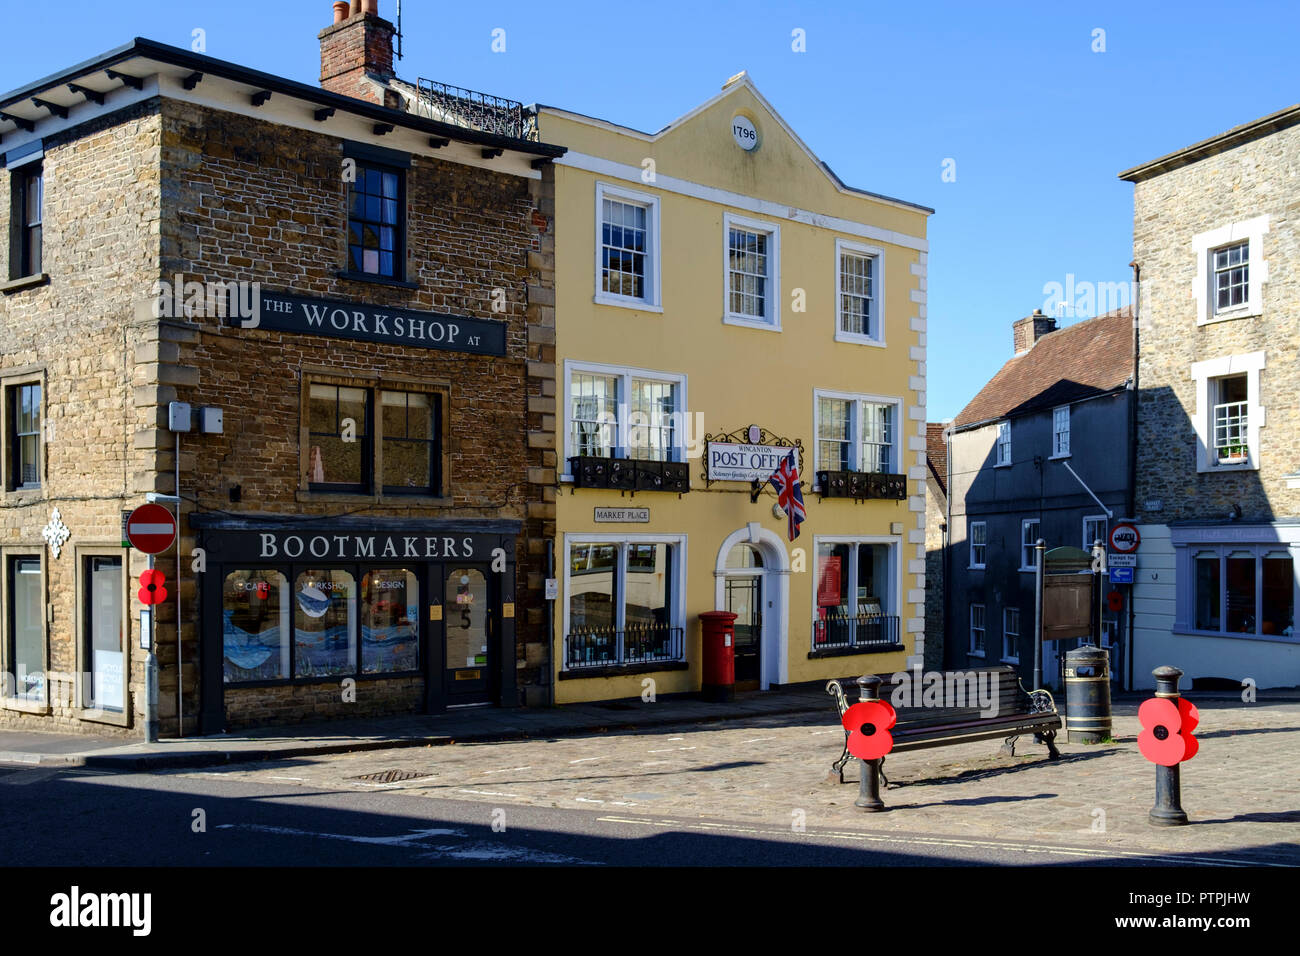 Wincanton, a small town in South Somerset England UK Post office - Stock Image